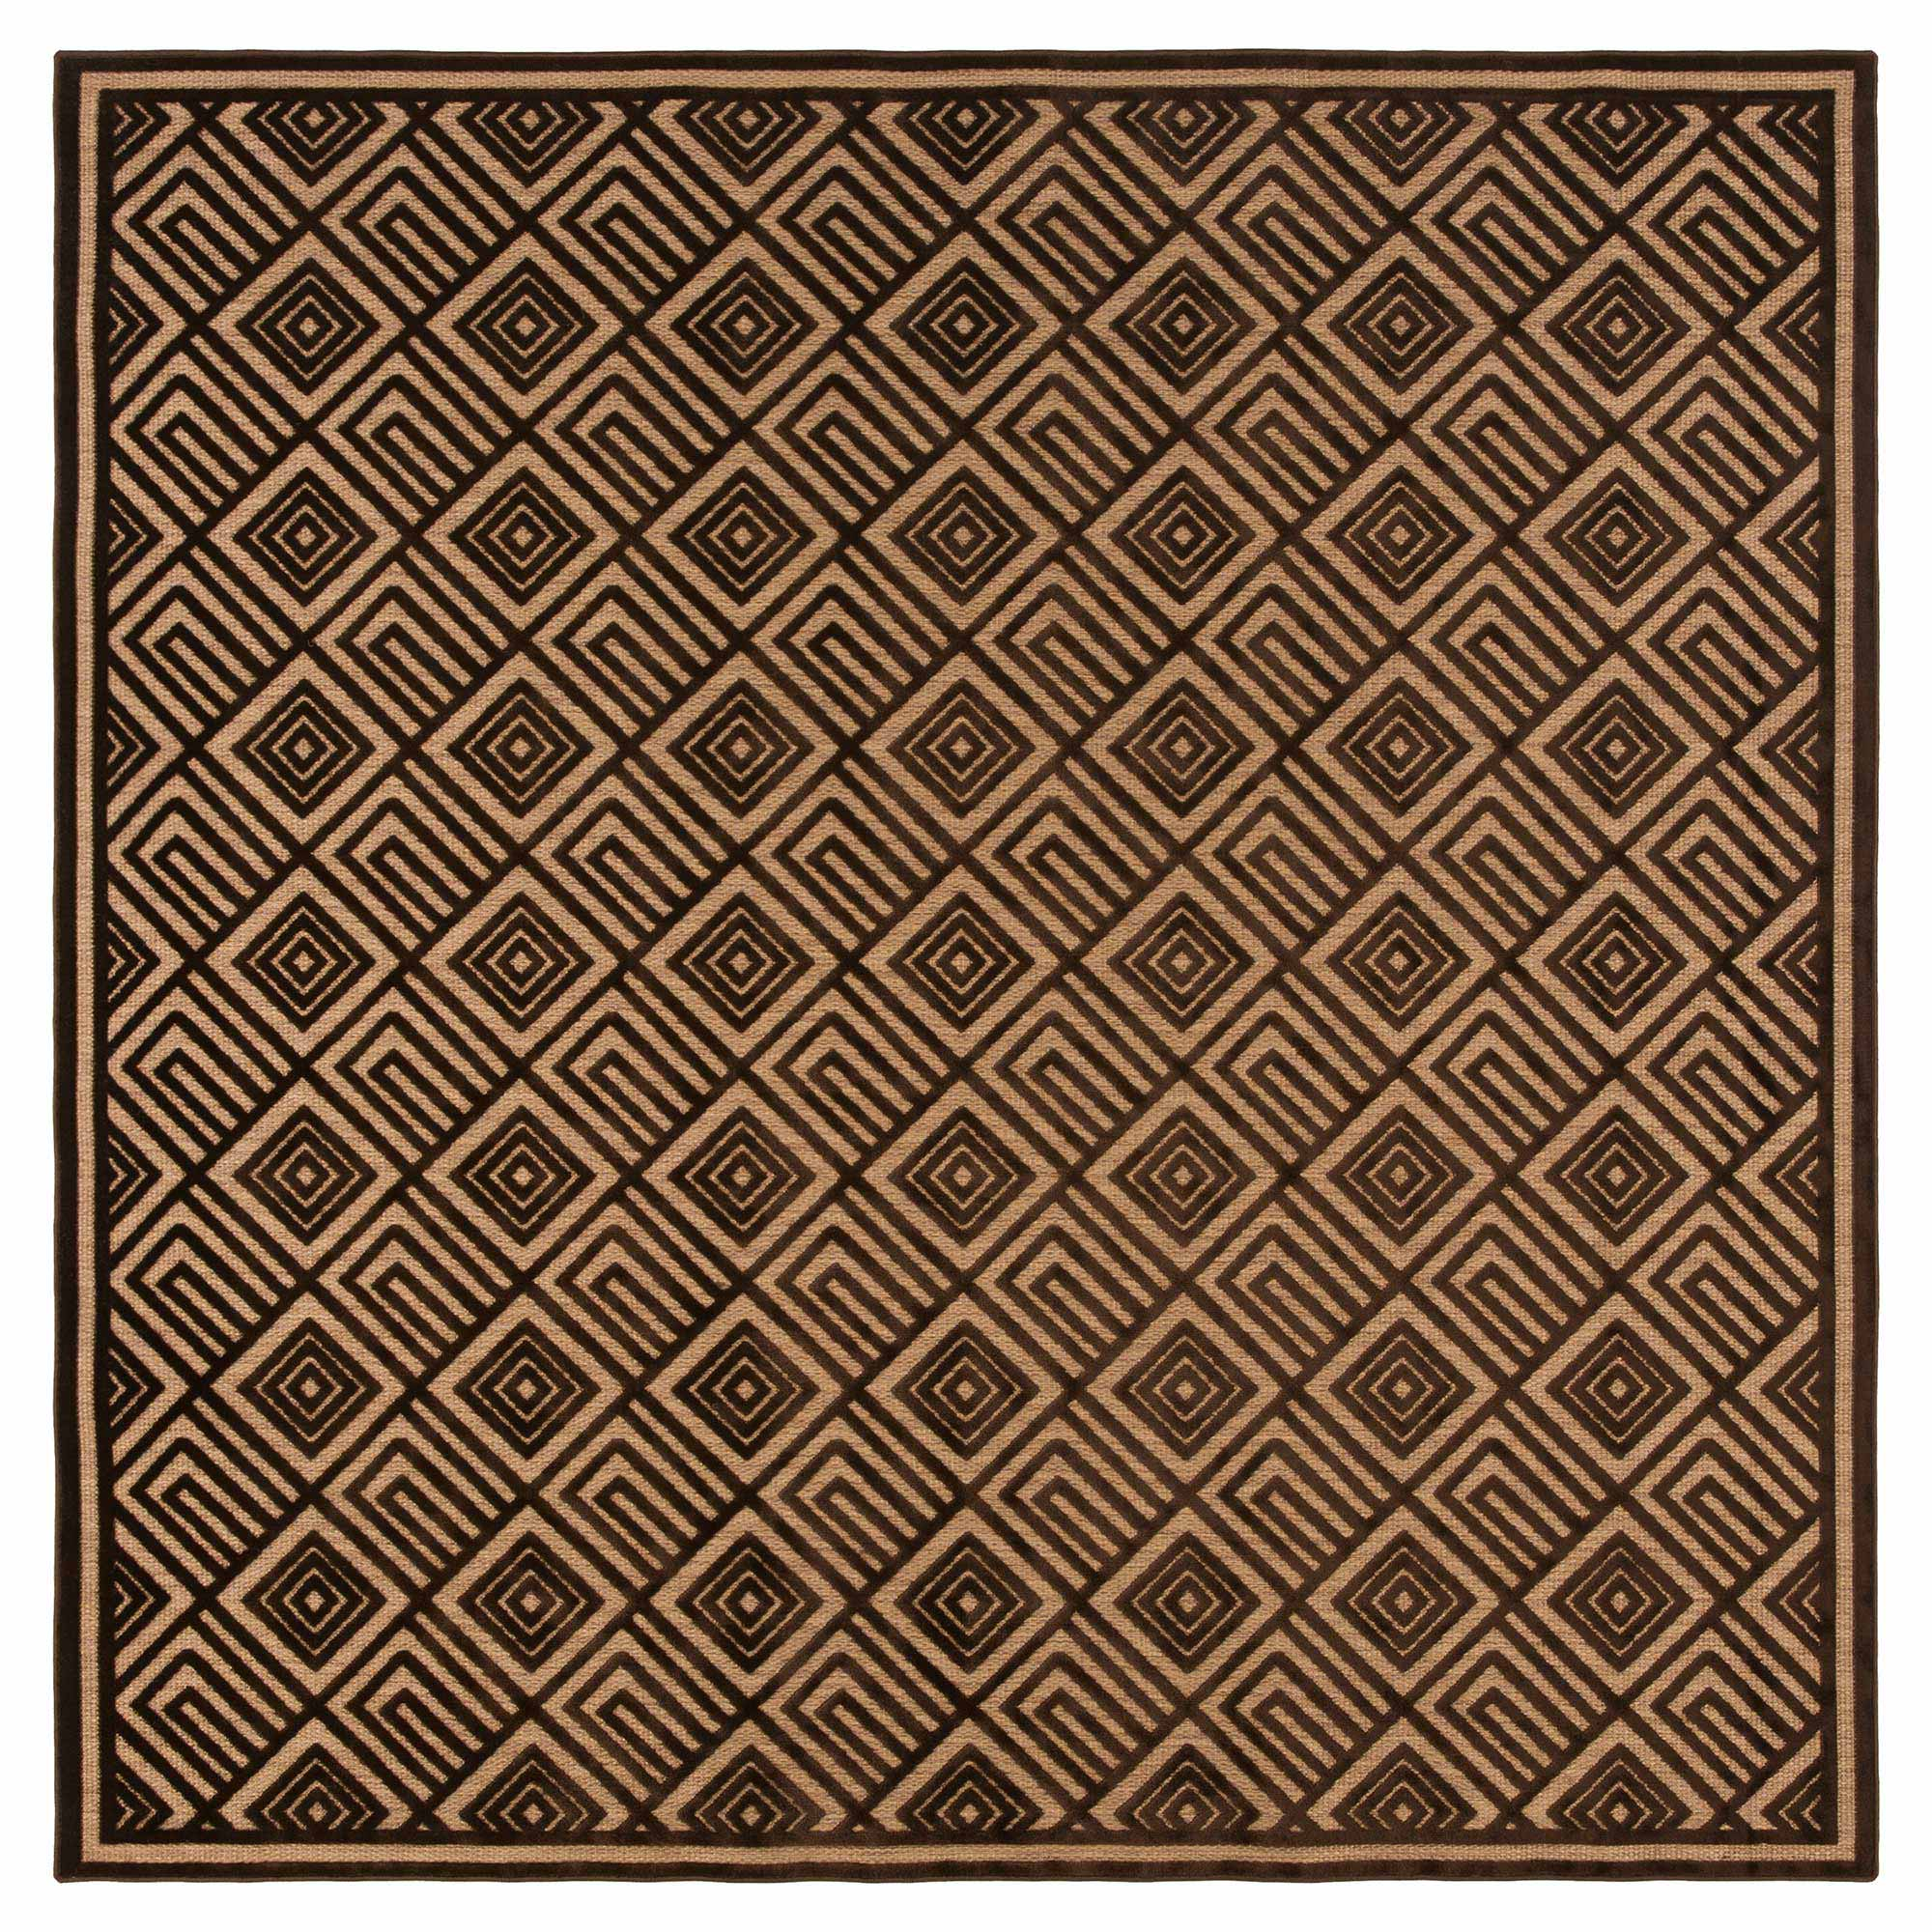 Anouk Global Dark Brown Geometric Outdoor Rug - 2'6 x 7'10Sample